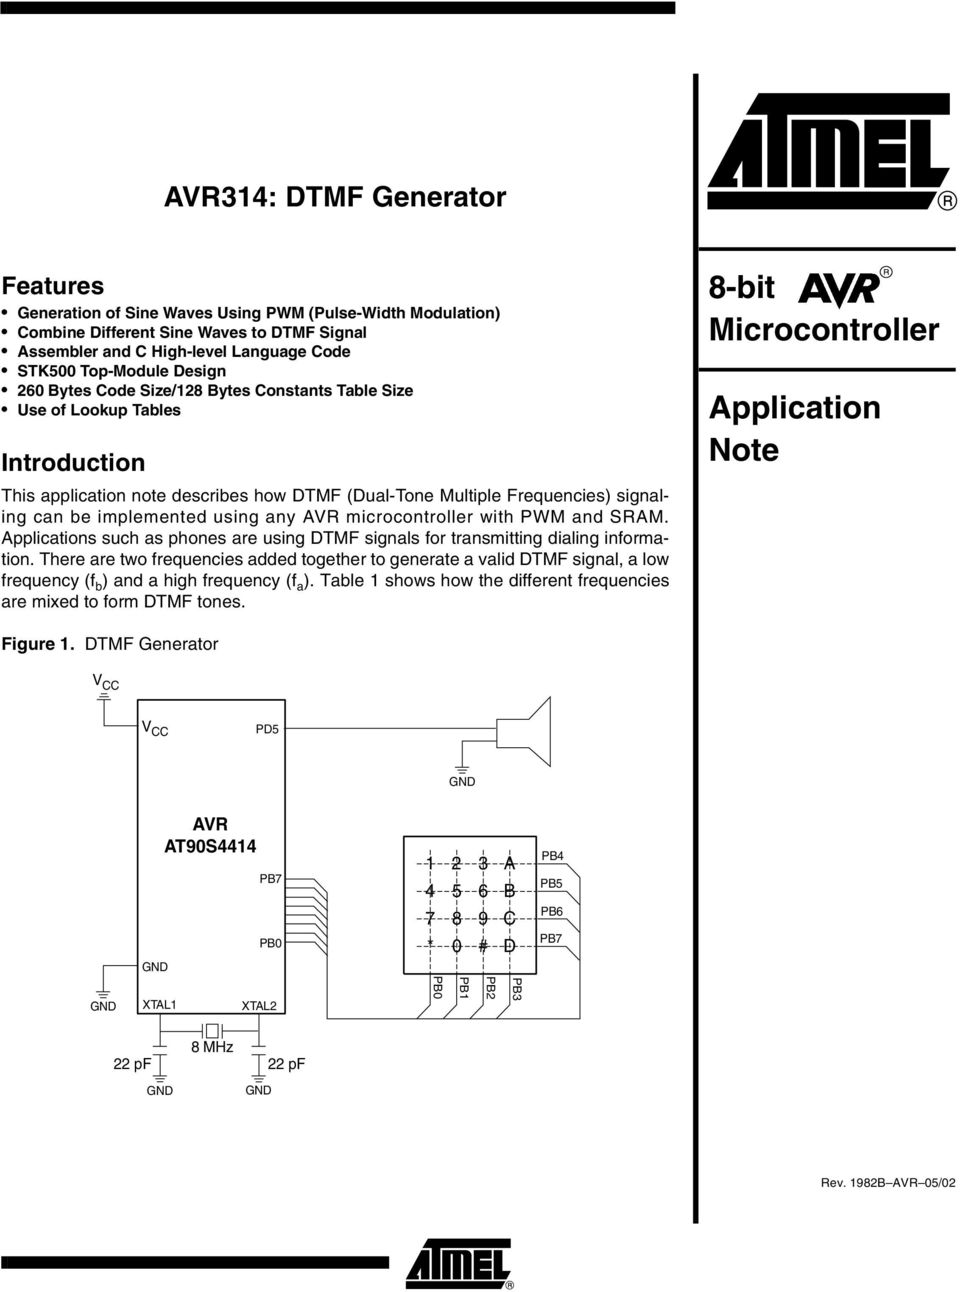 using any AVR microcontroller with PWM and SRAM. Applications such as phones are using DTMF signals for transmitting dialing information.